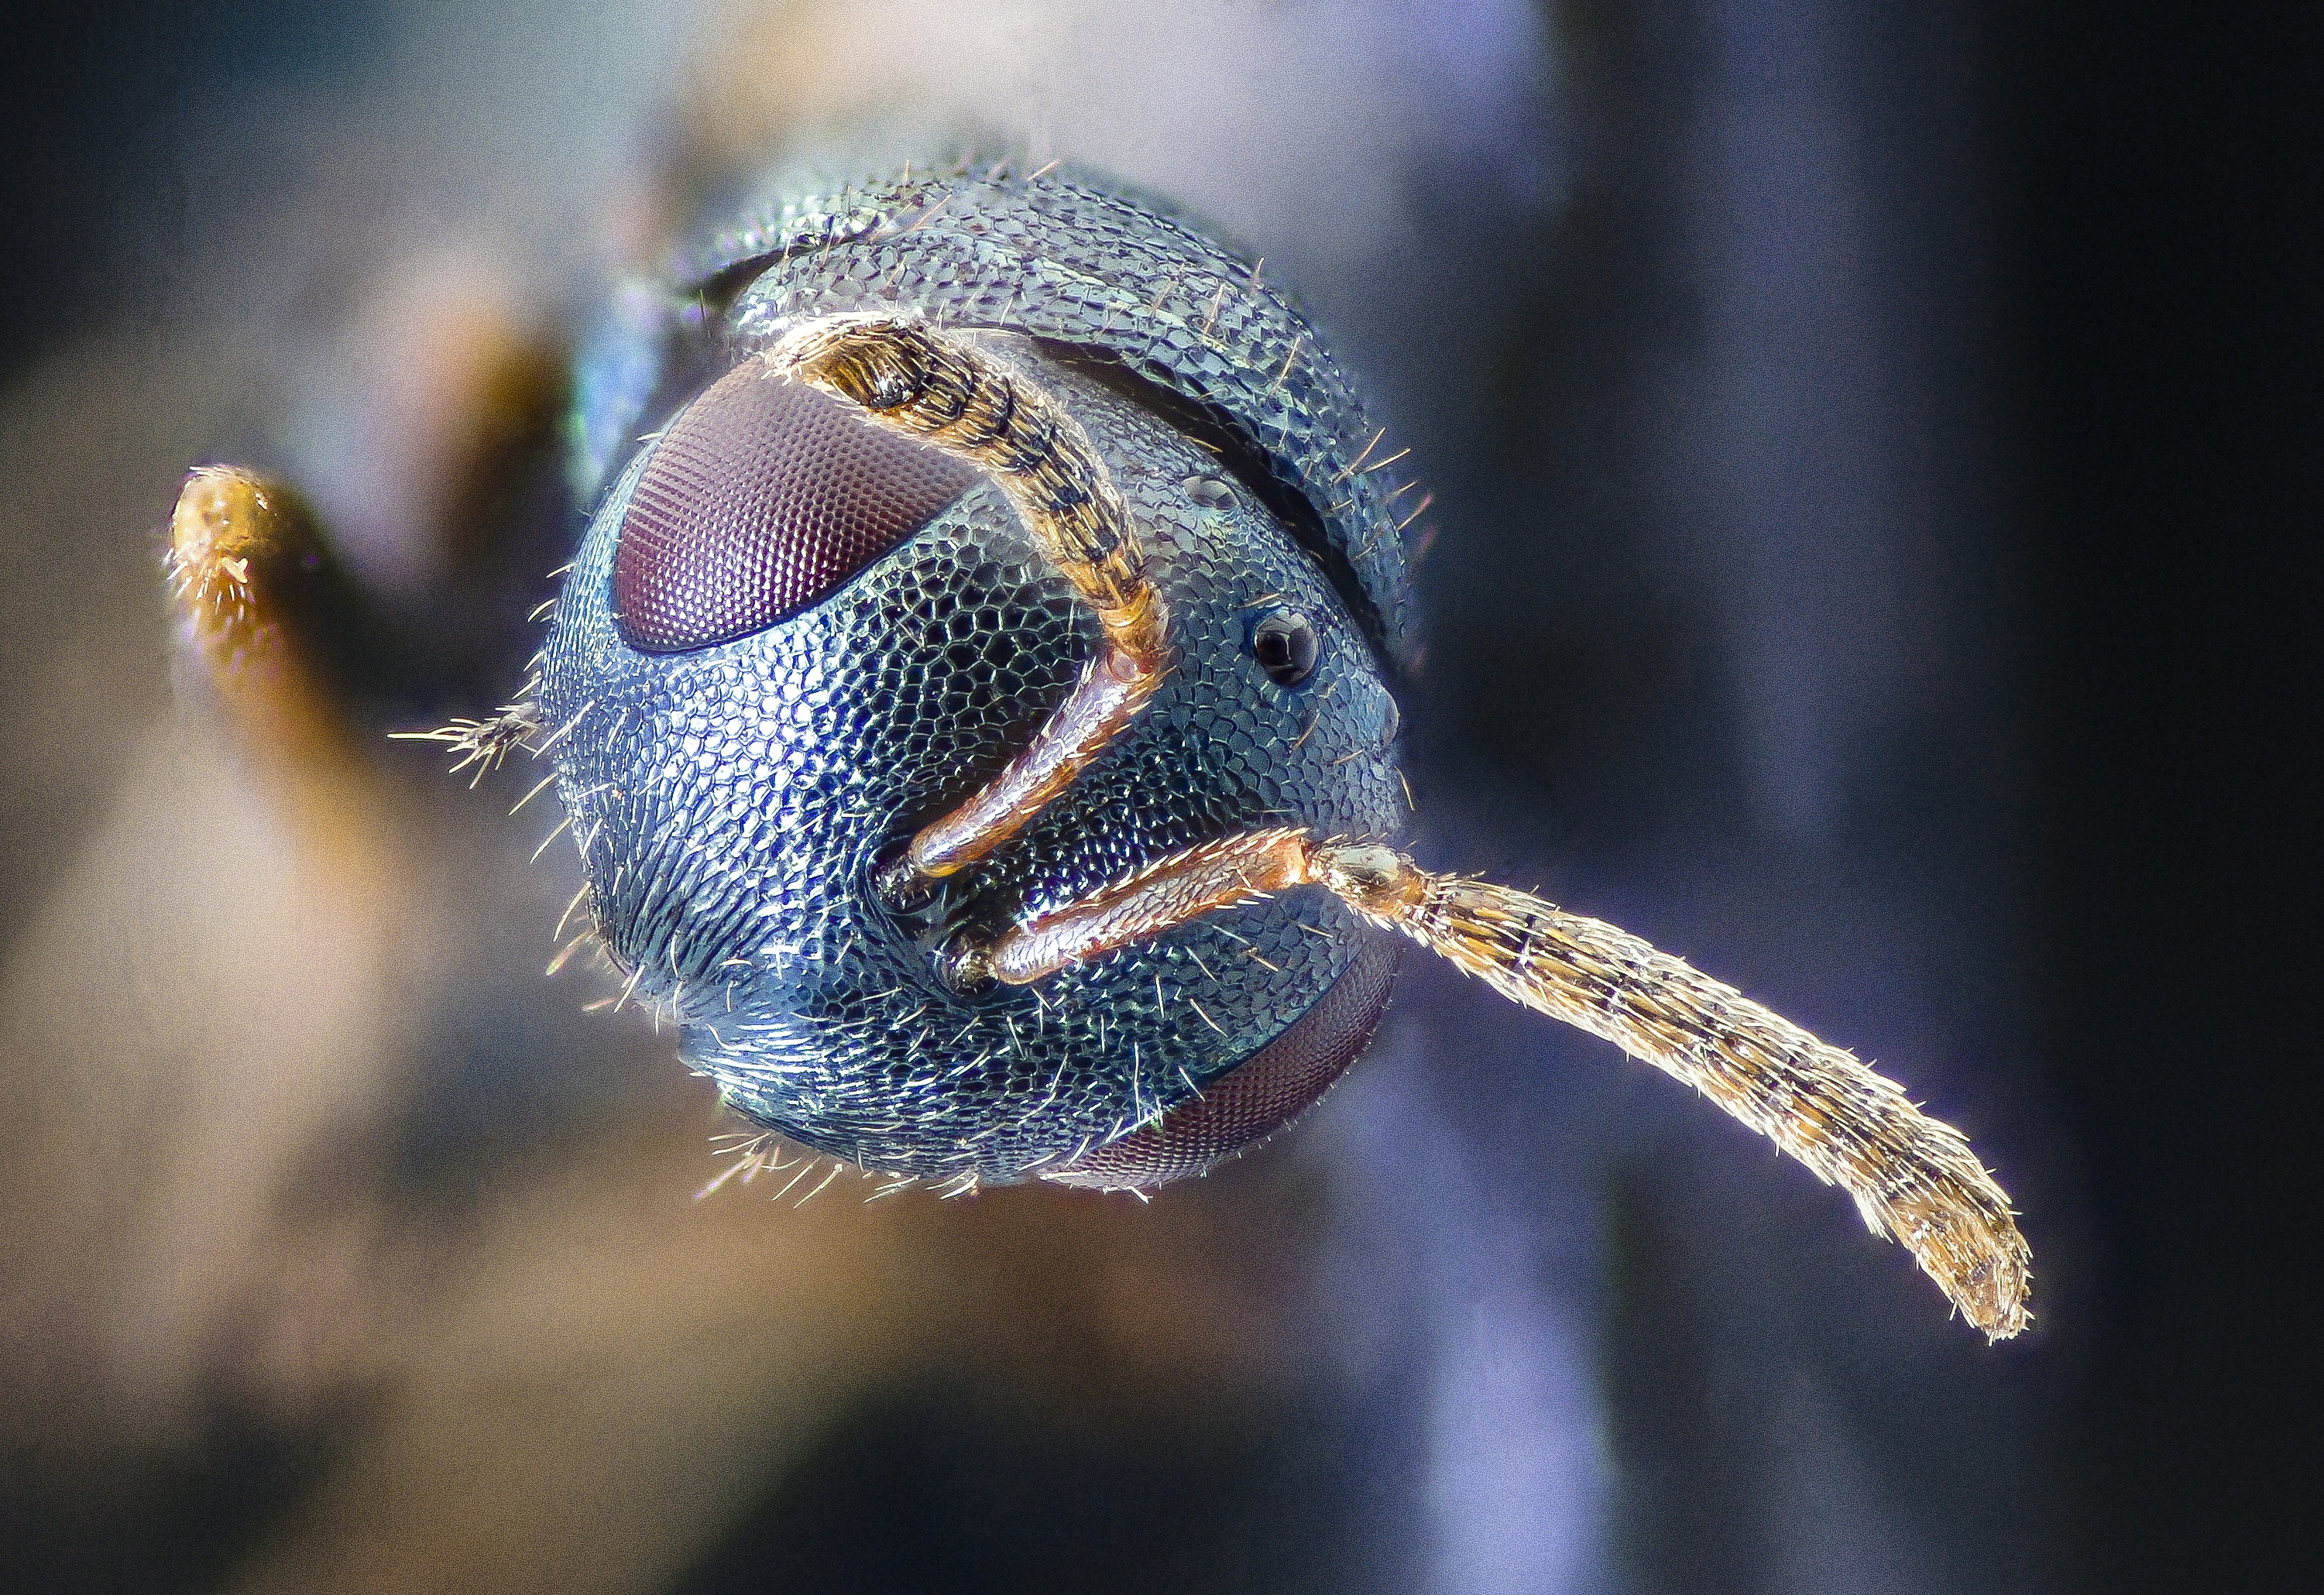 Free download high resolution image - free image free photo free stock image public domain picture -small wasp head